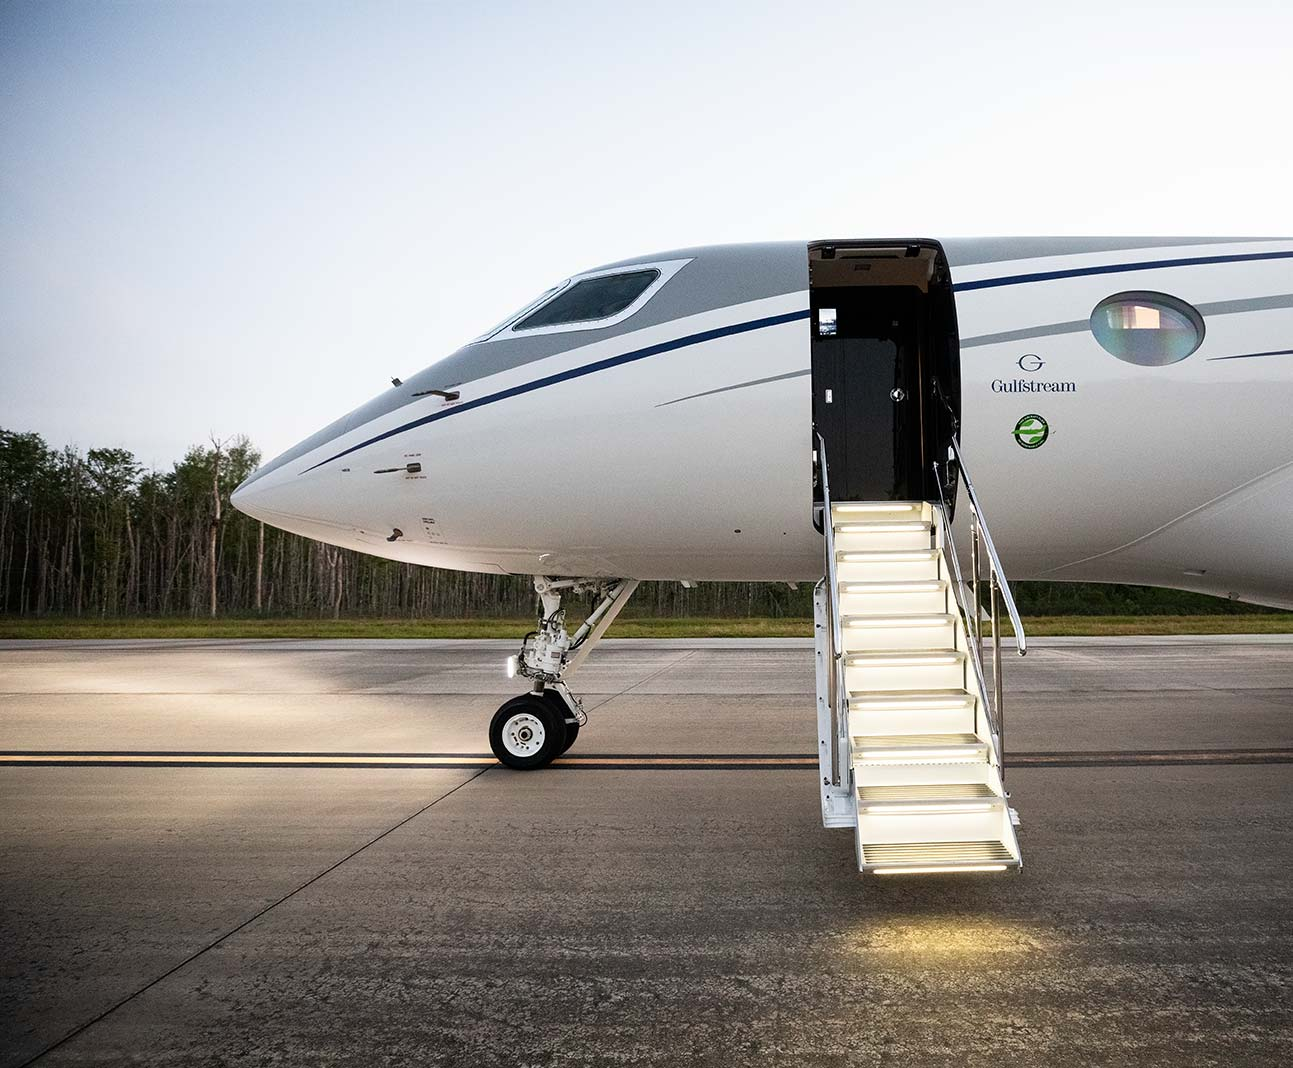 Gulfstream G500 aircraft exterior with stairs extended.